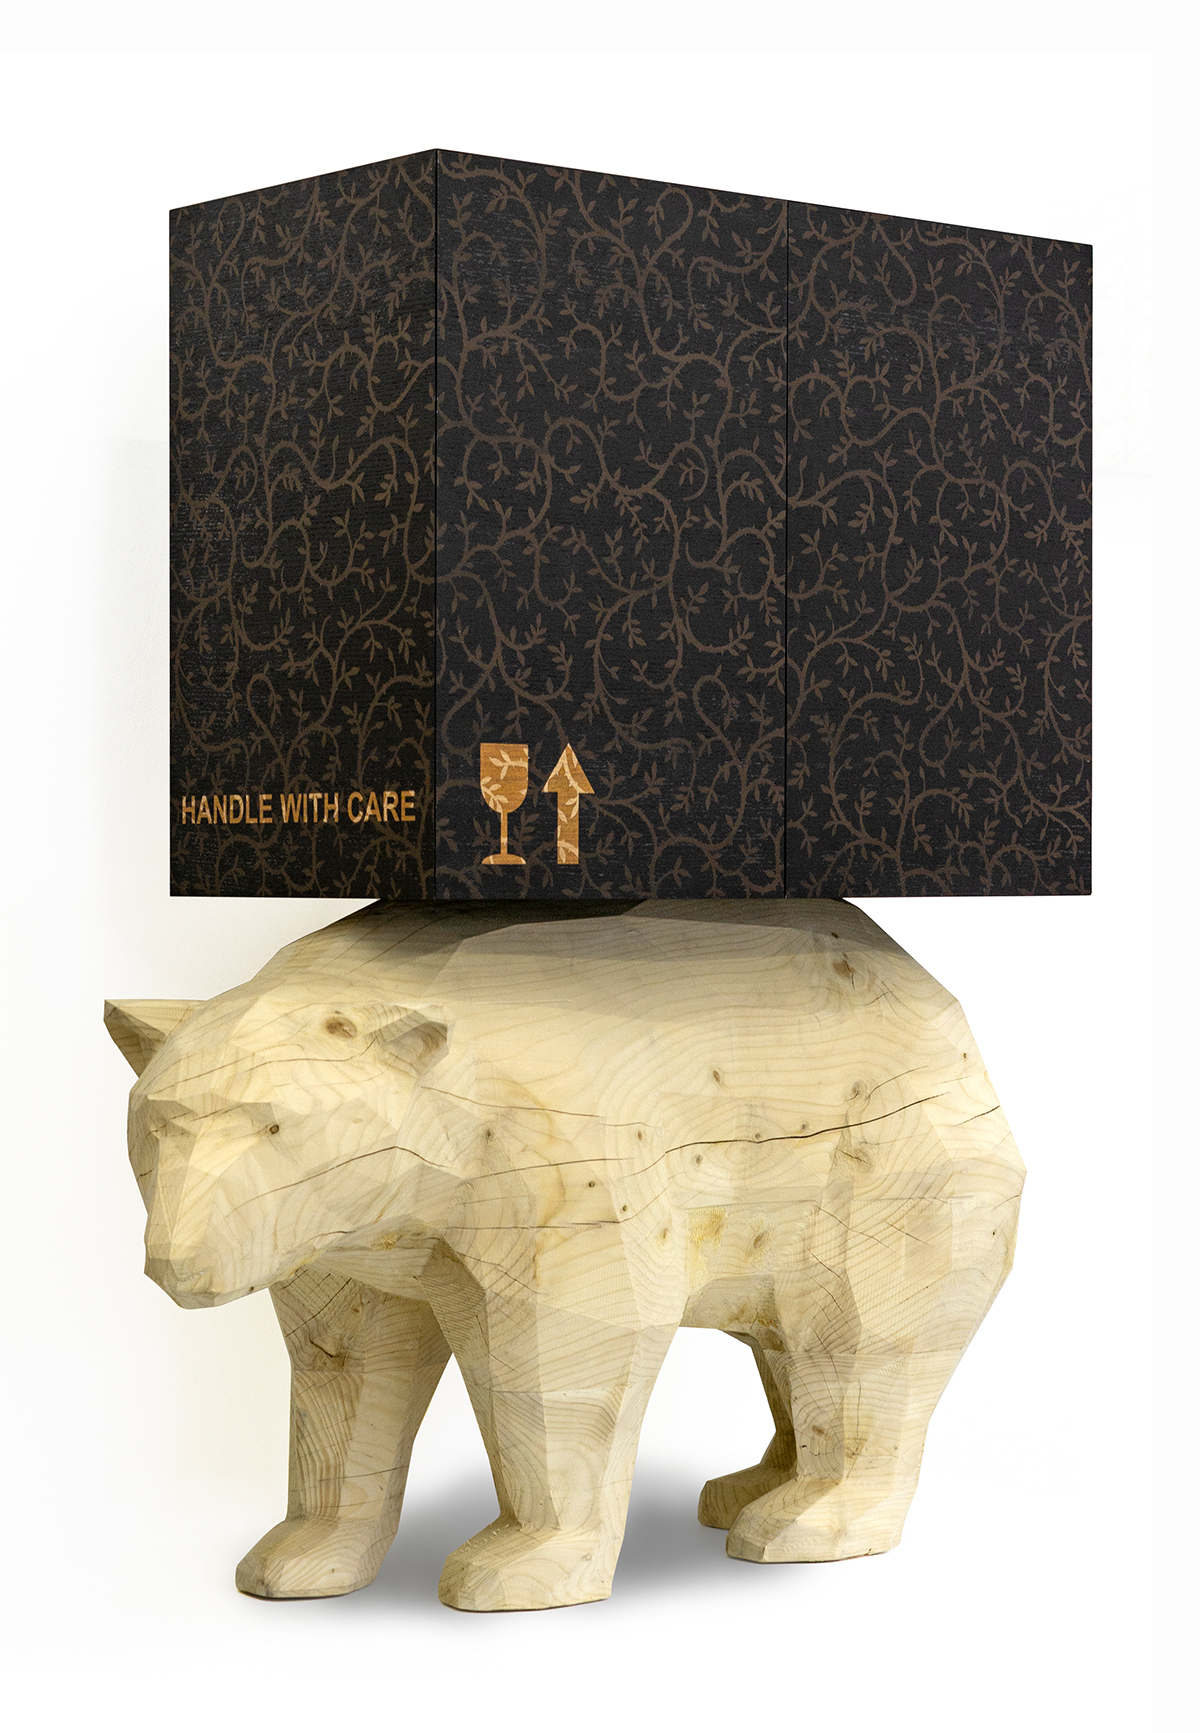 POLAR BEAR CASE - Marcantonio design